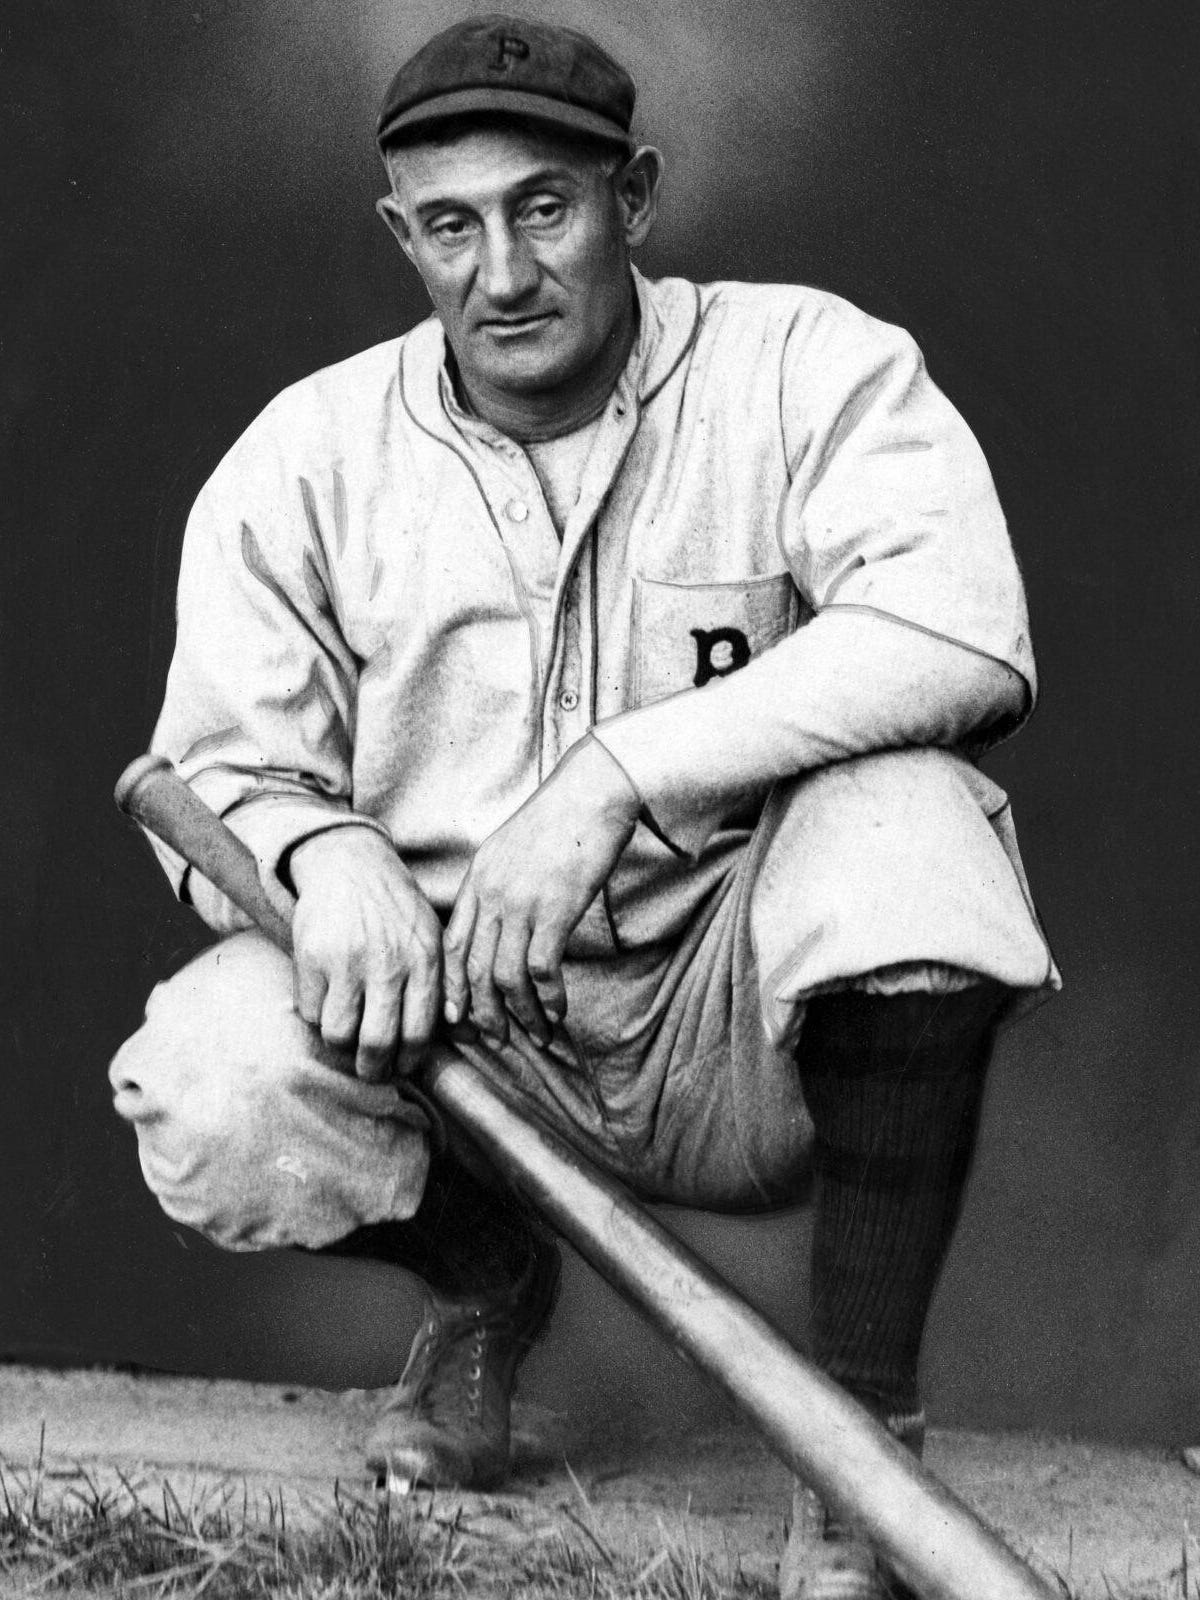 Ninety-six years ago, Honus Wagner brought his all-stars to Georgetown